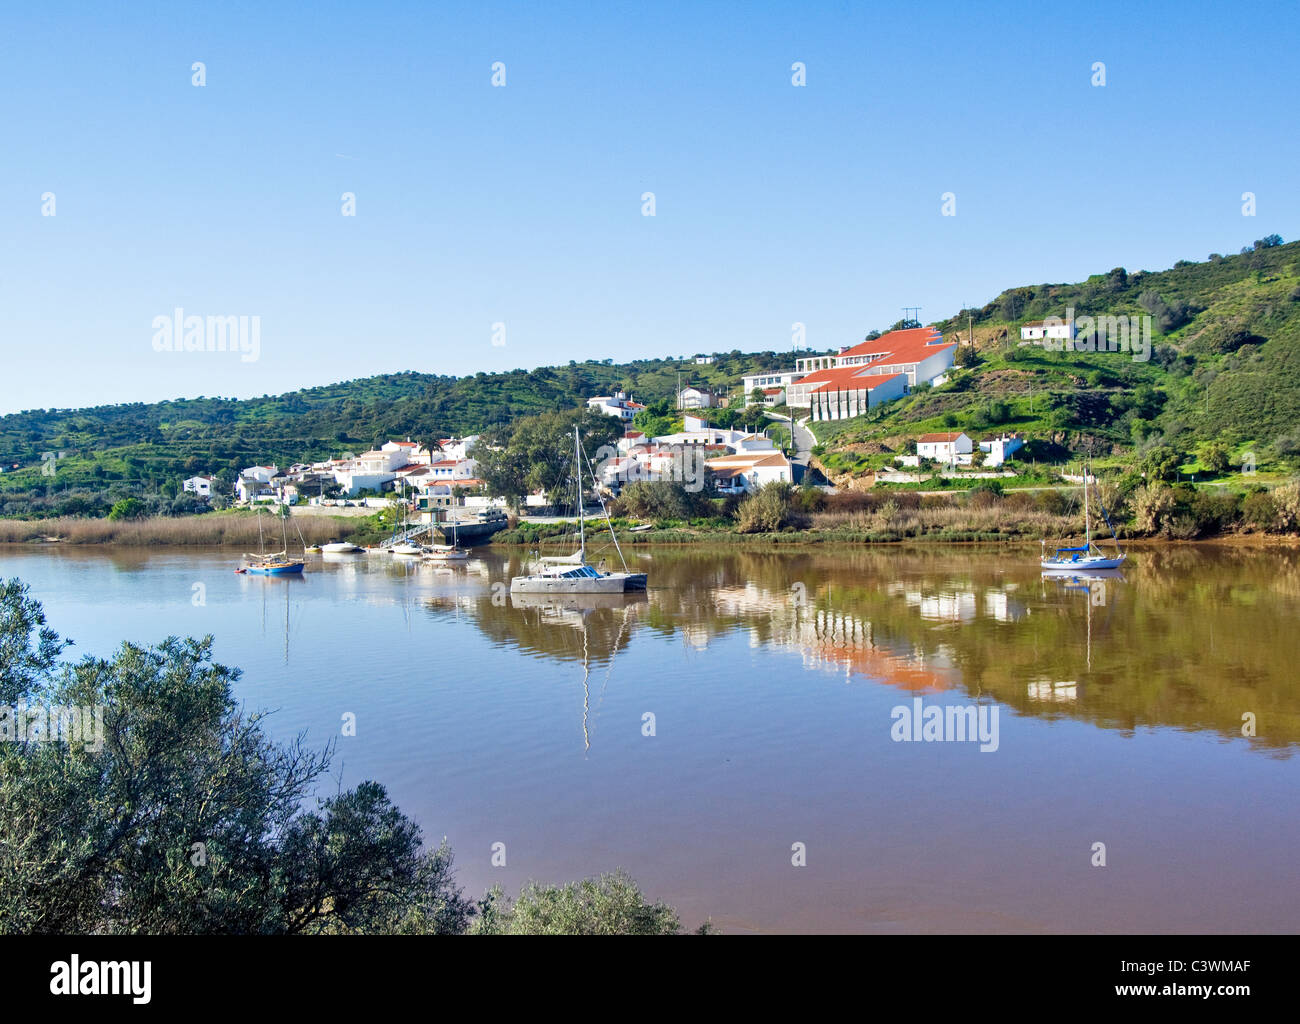 Yachts at anchor at Guerreiros de Rio on the river Guadiana Algarve, Portugal - Stock Image